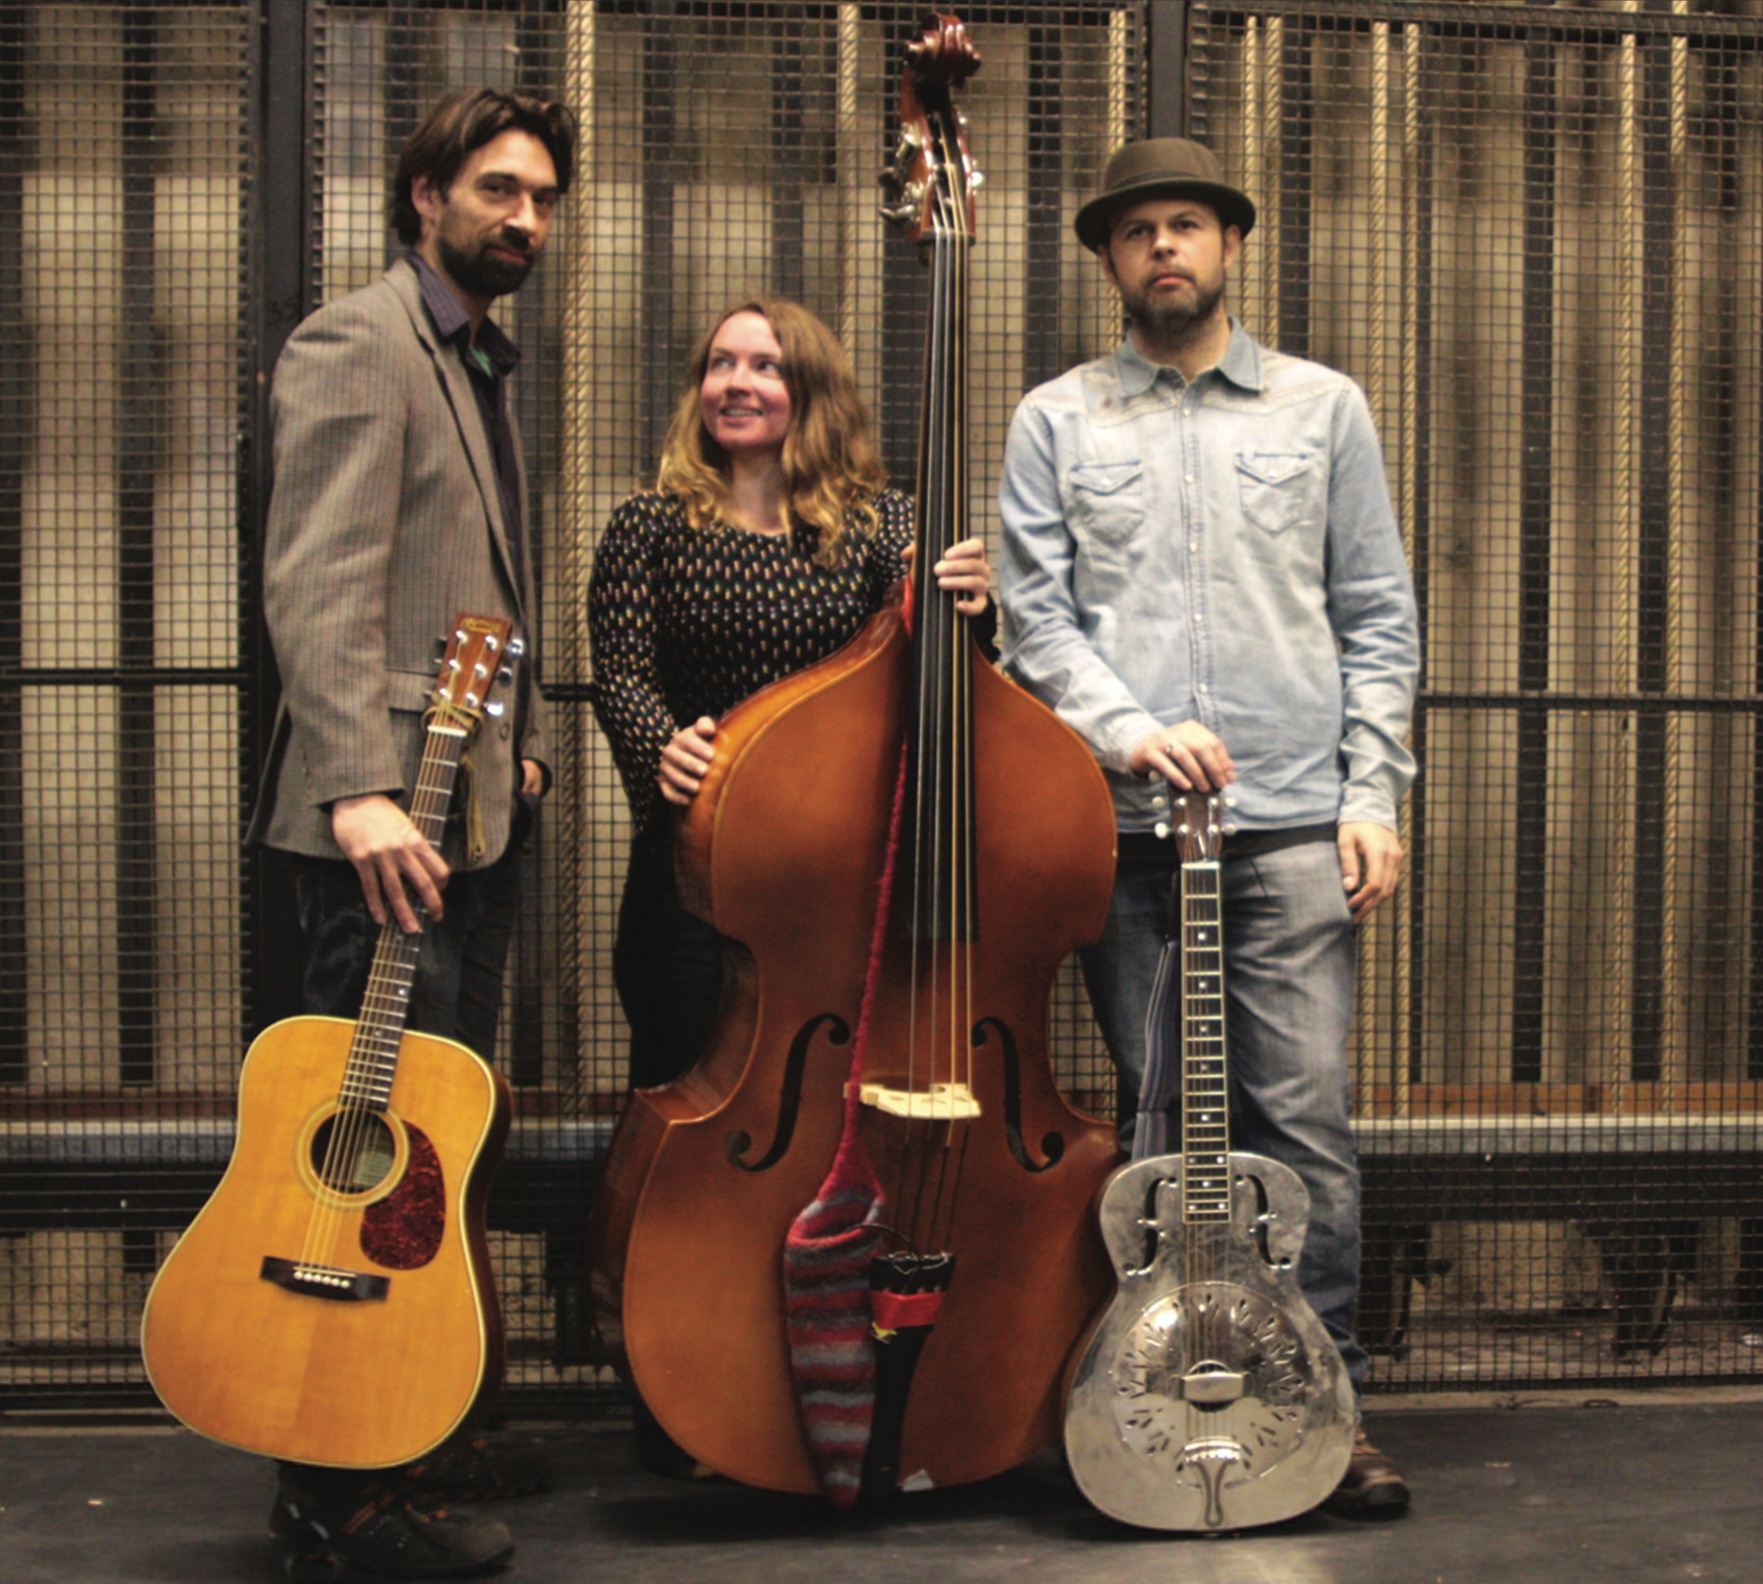 JENNY WREN & HER BORROWED WINGS - RHYTHM & BLUESDOOR 7PM / MUSIC 8.30PM£10 / £9 / £0 (BK)EMAIL TO RESERVE